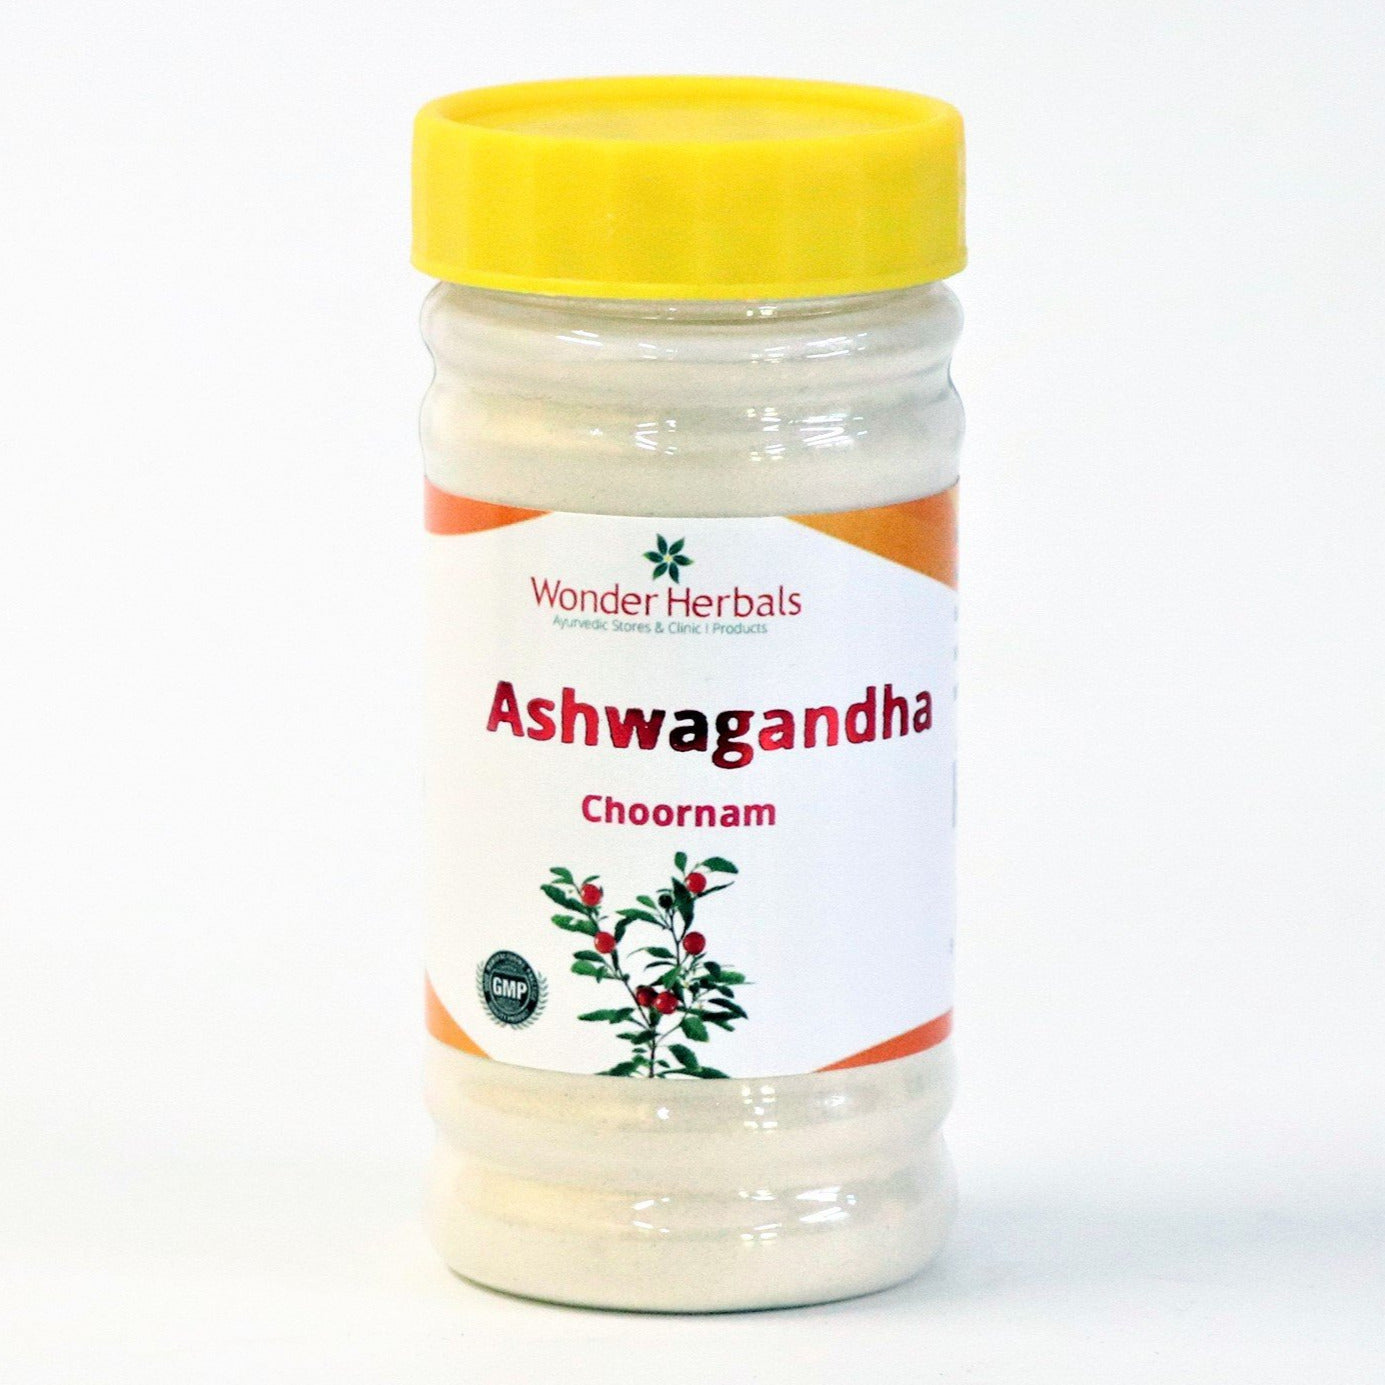 Ashwagandha (Indian Ginseng) Powder - Wonderherbals